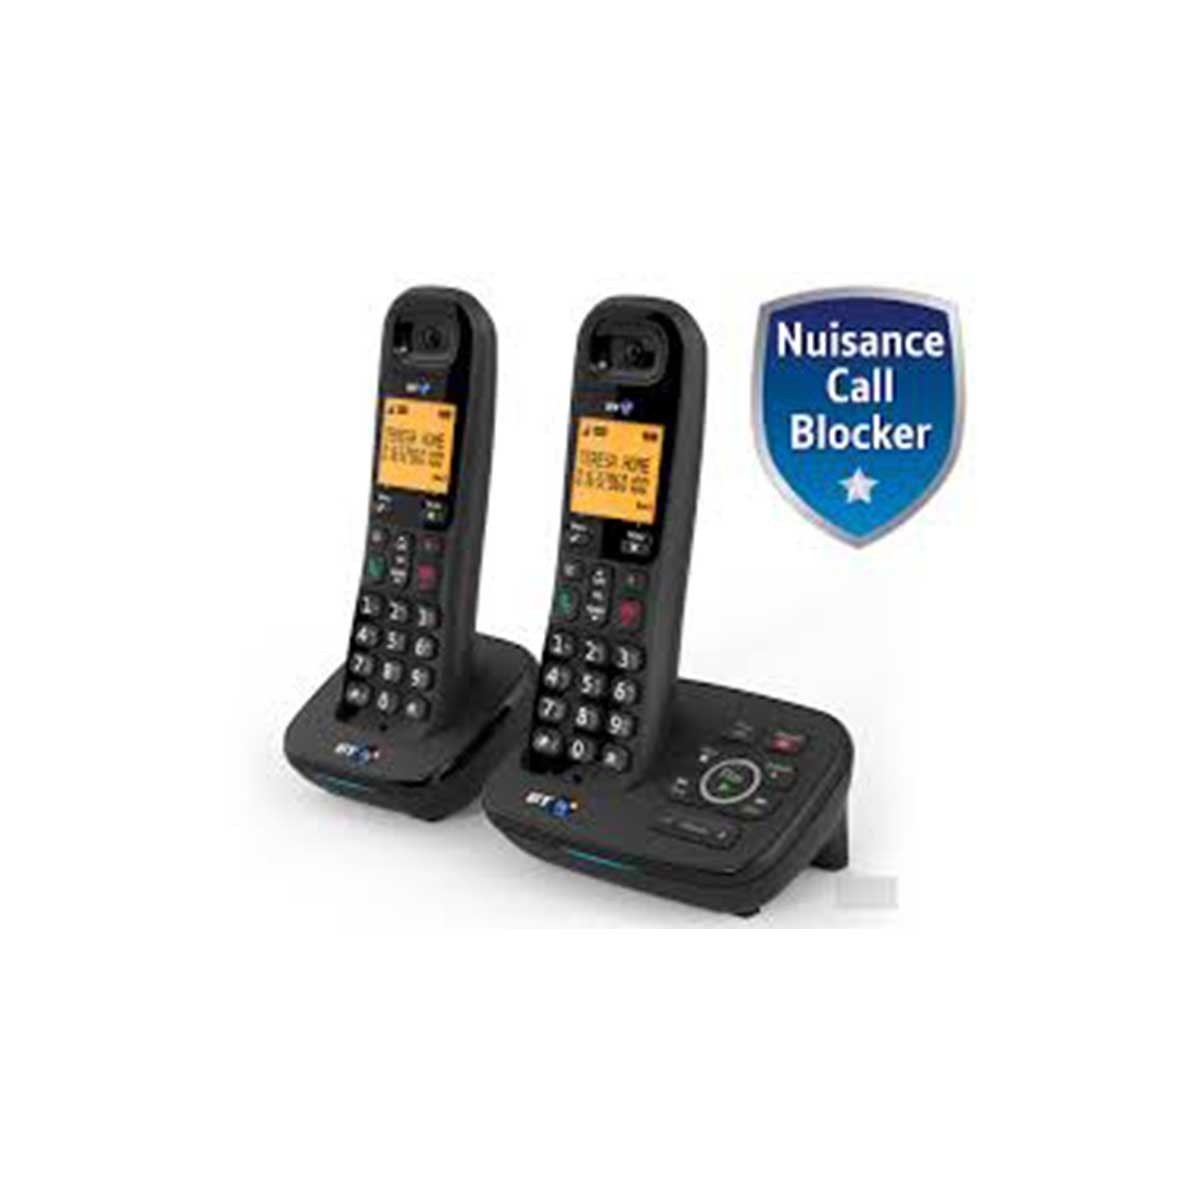 BT BT1700 Twin Dect Telephone with Nuisance Call blocking and Answer Machine